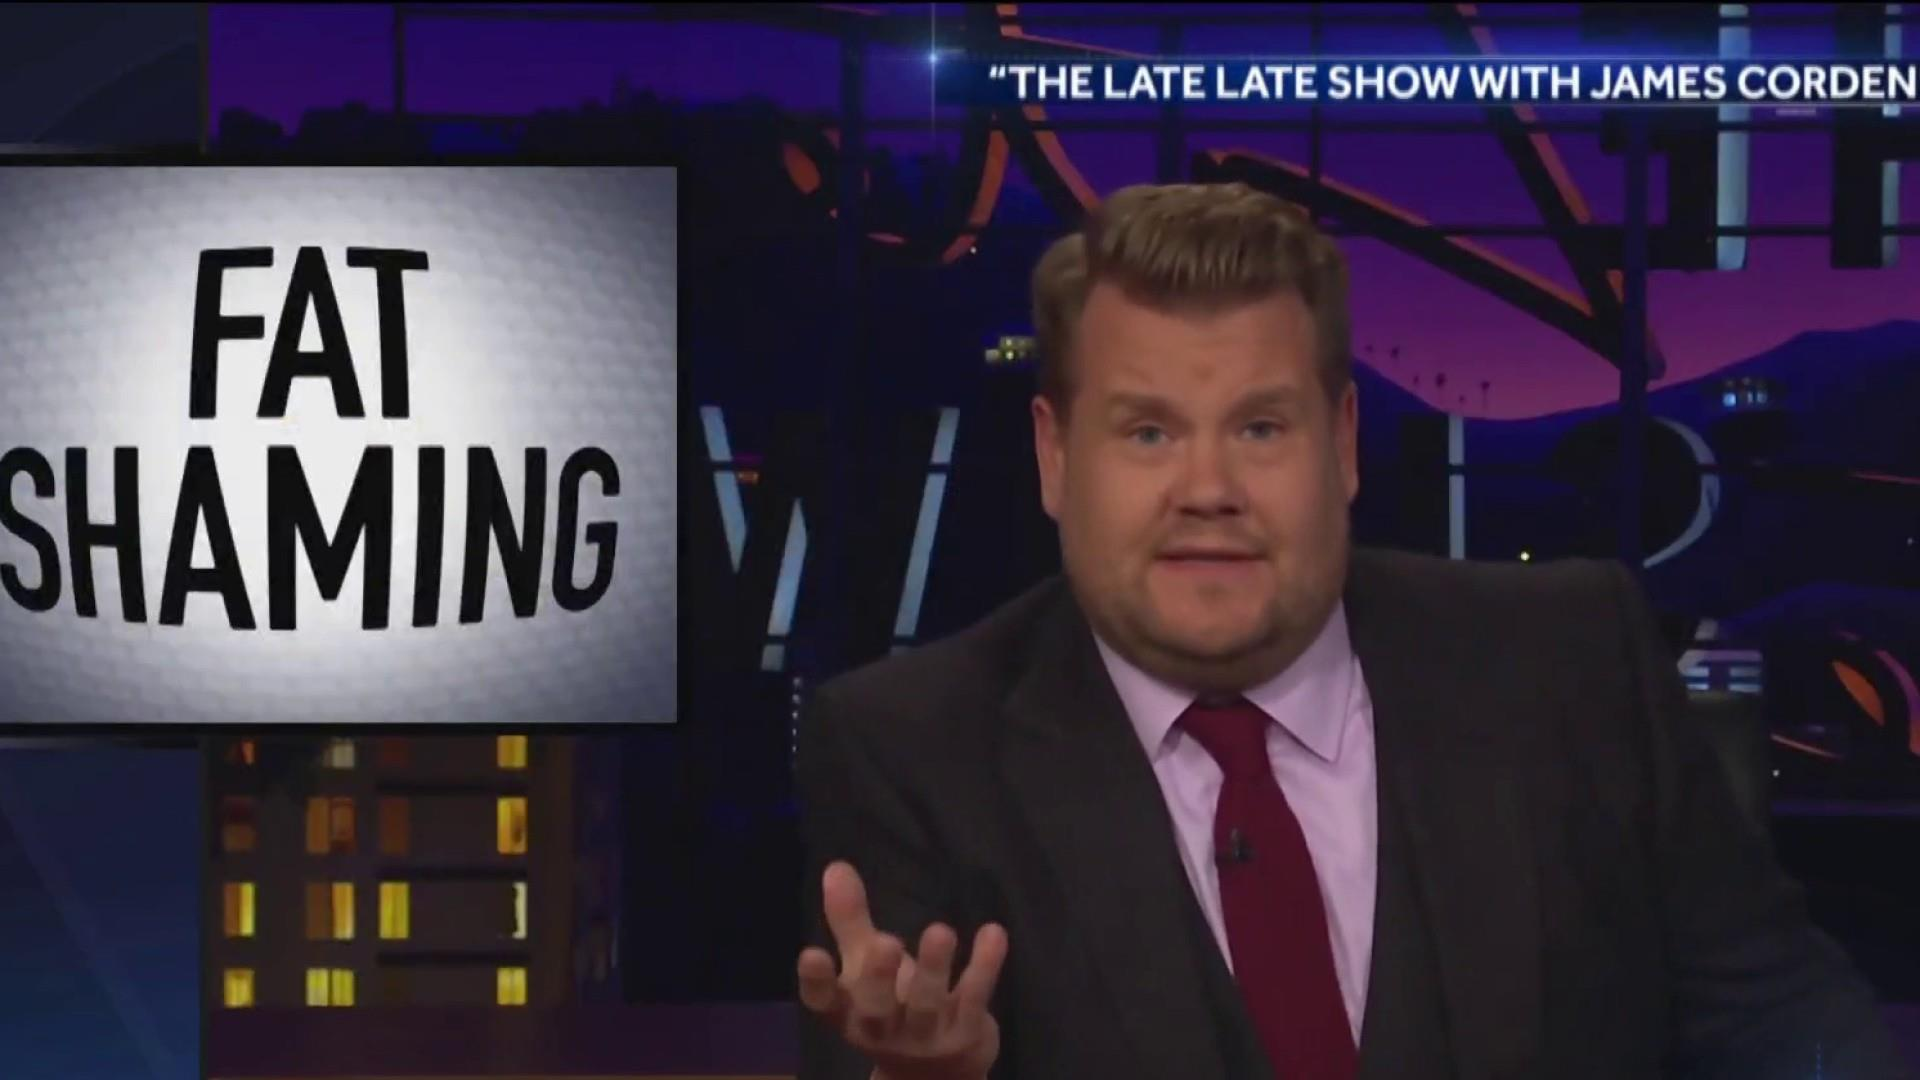 James Corden's personal response to fat shaming comments